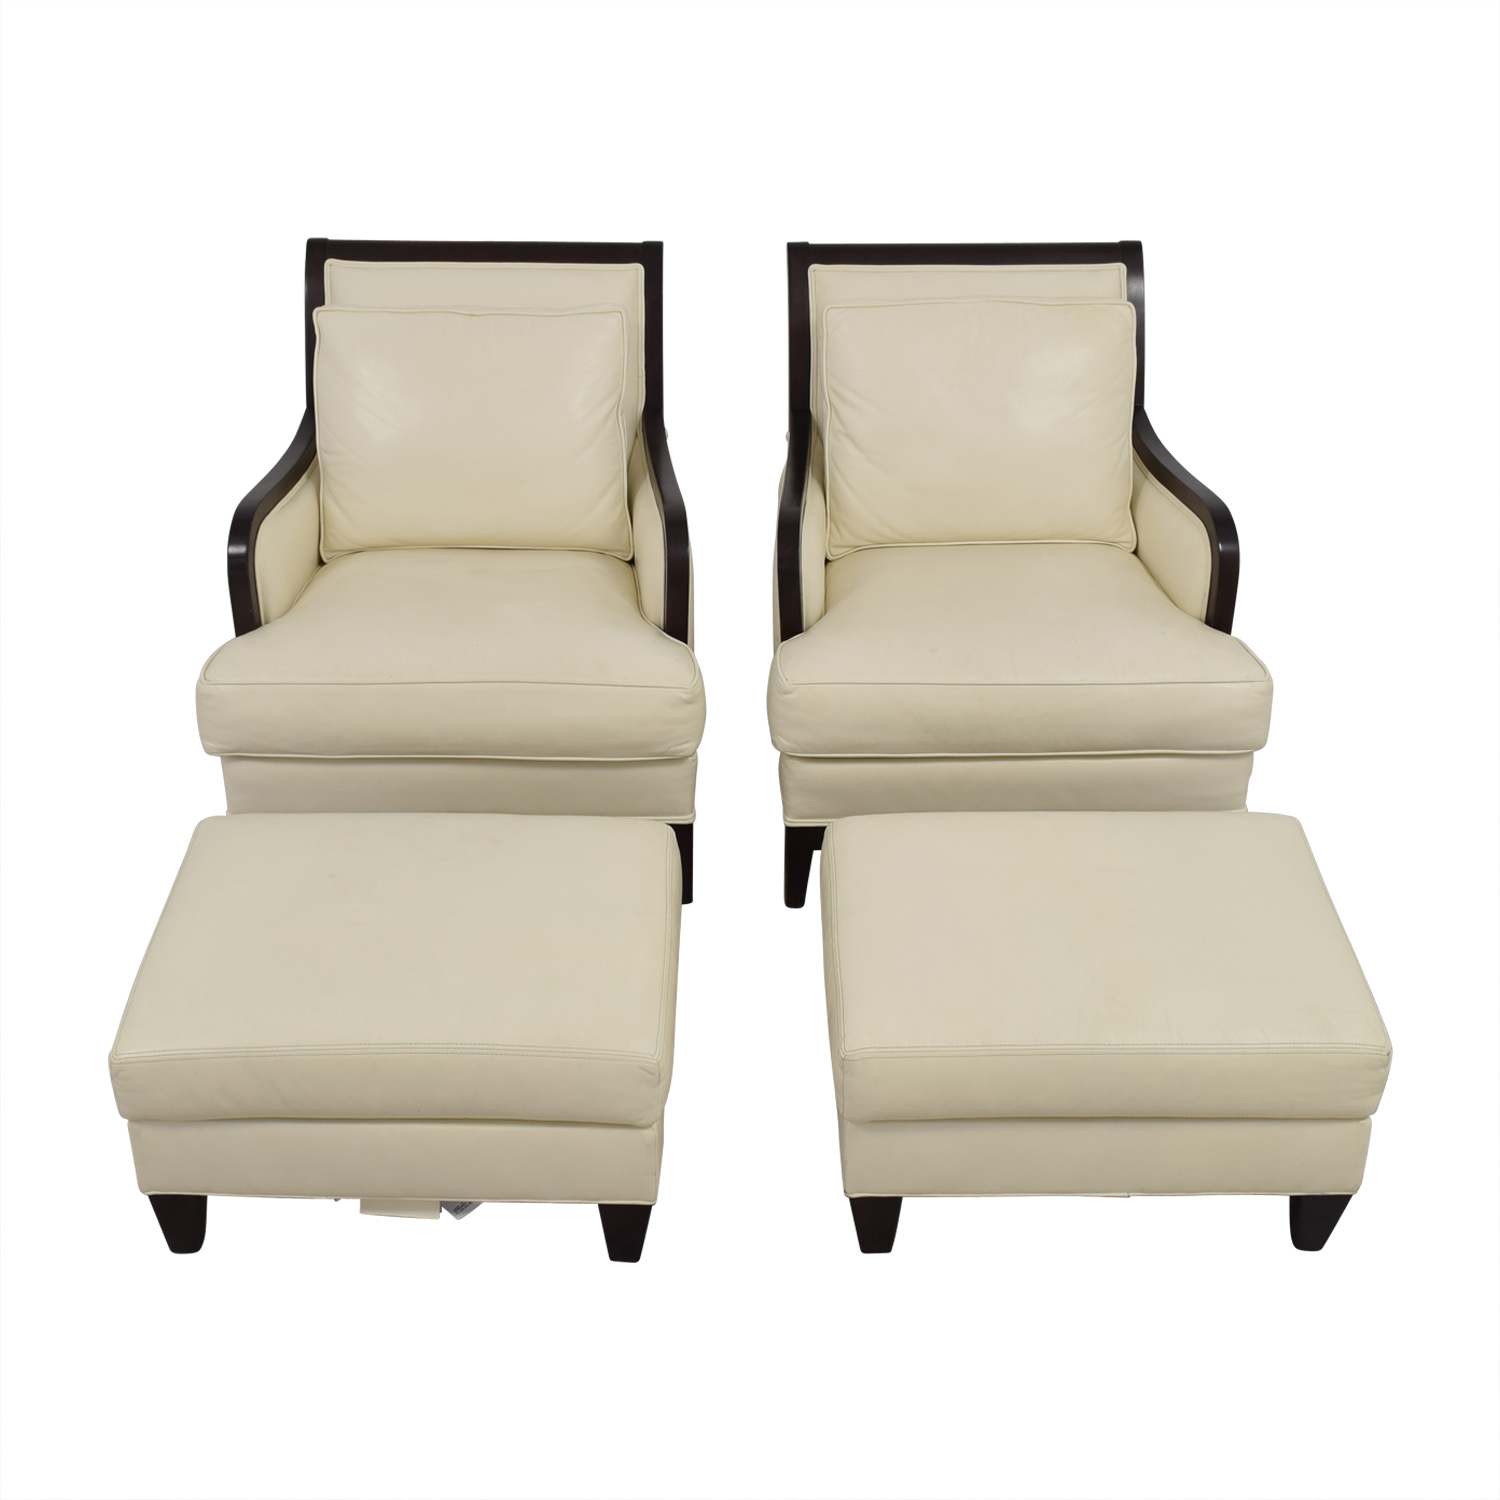 Ethan Allen Ethan Allen Palma Ivory Leather Chairs with Ottomans nj